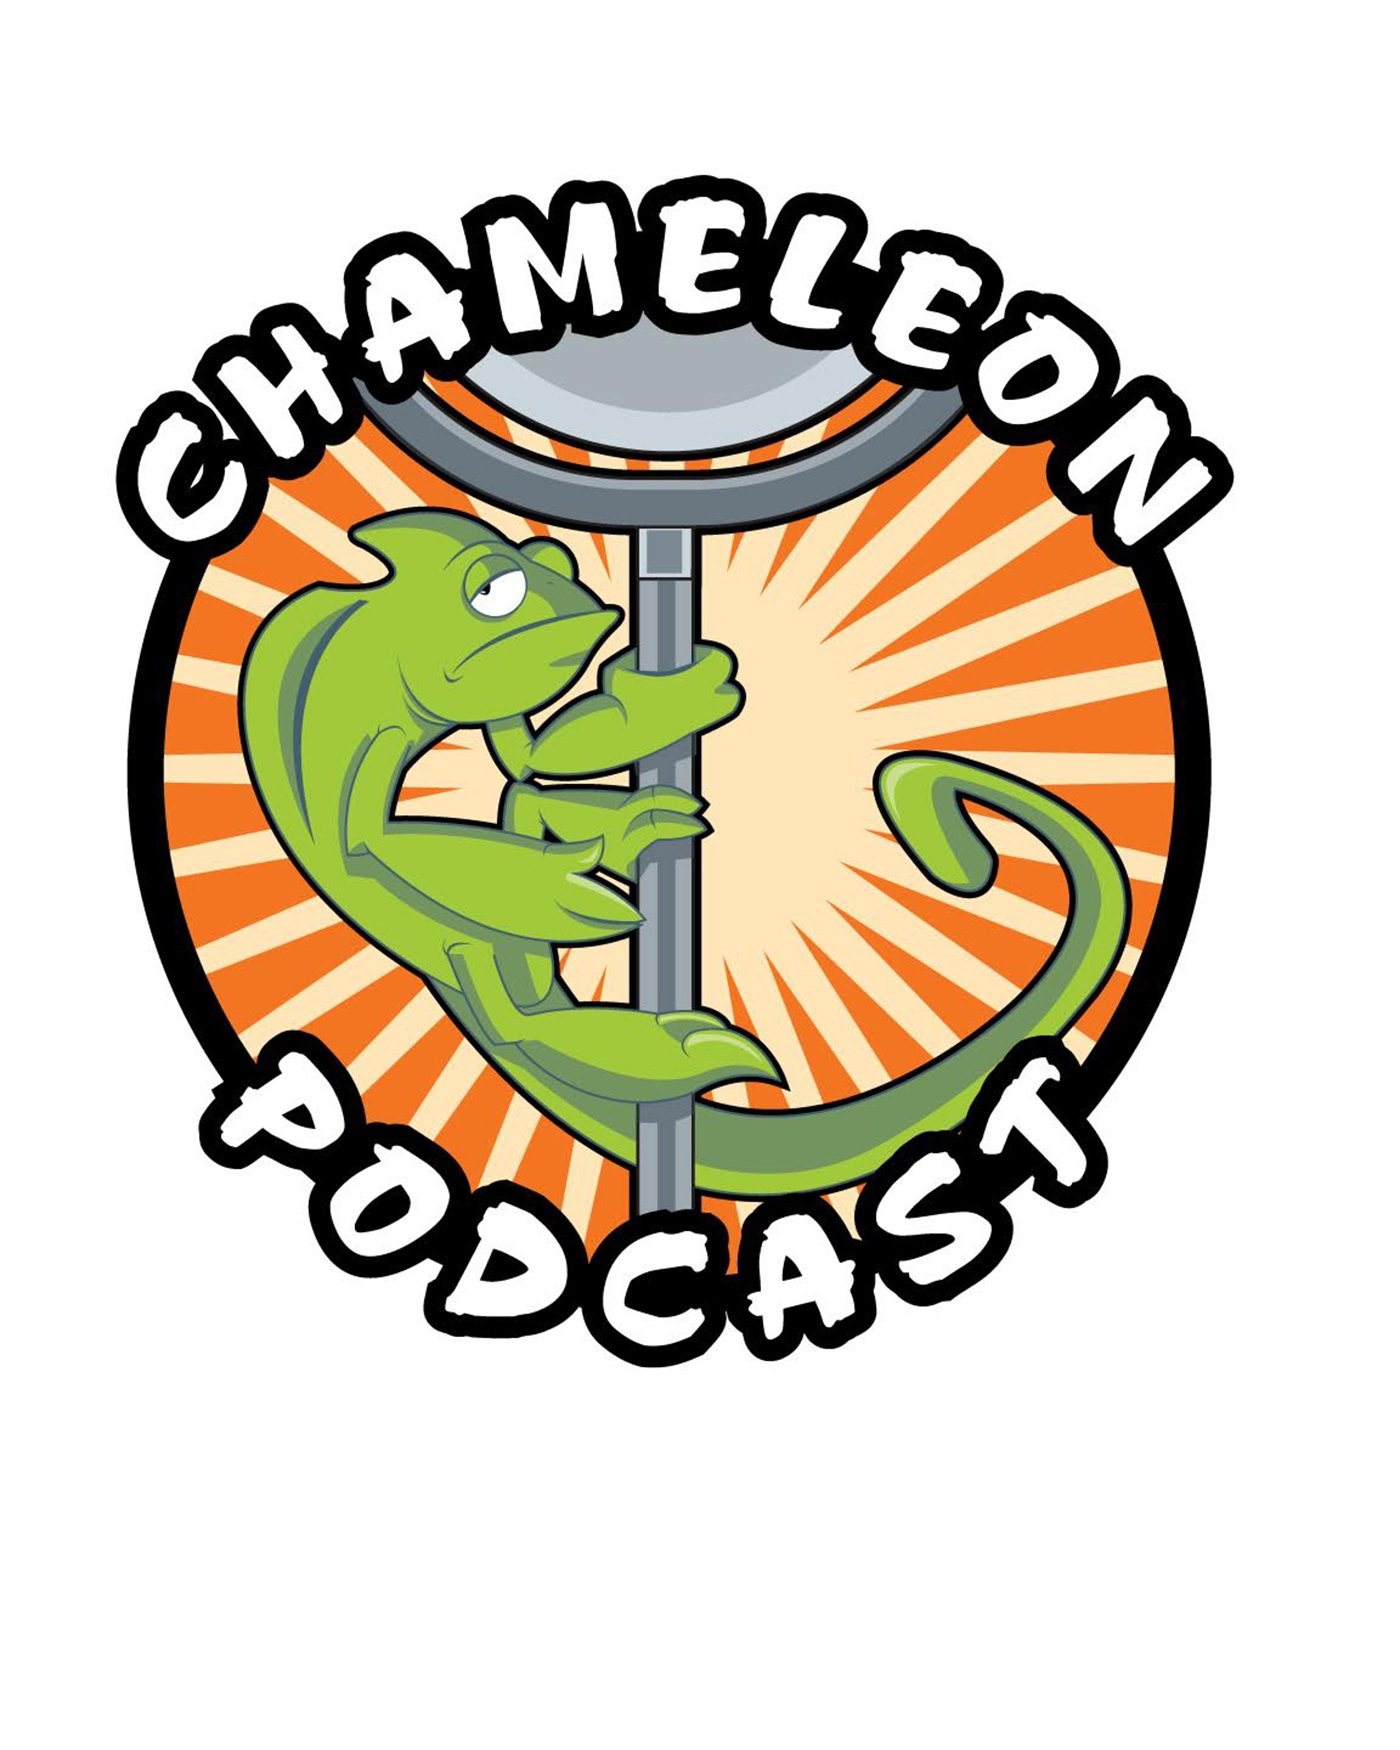 Chameleon Podcast